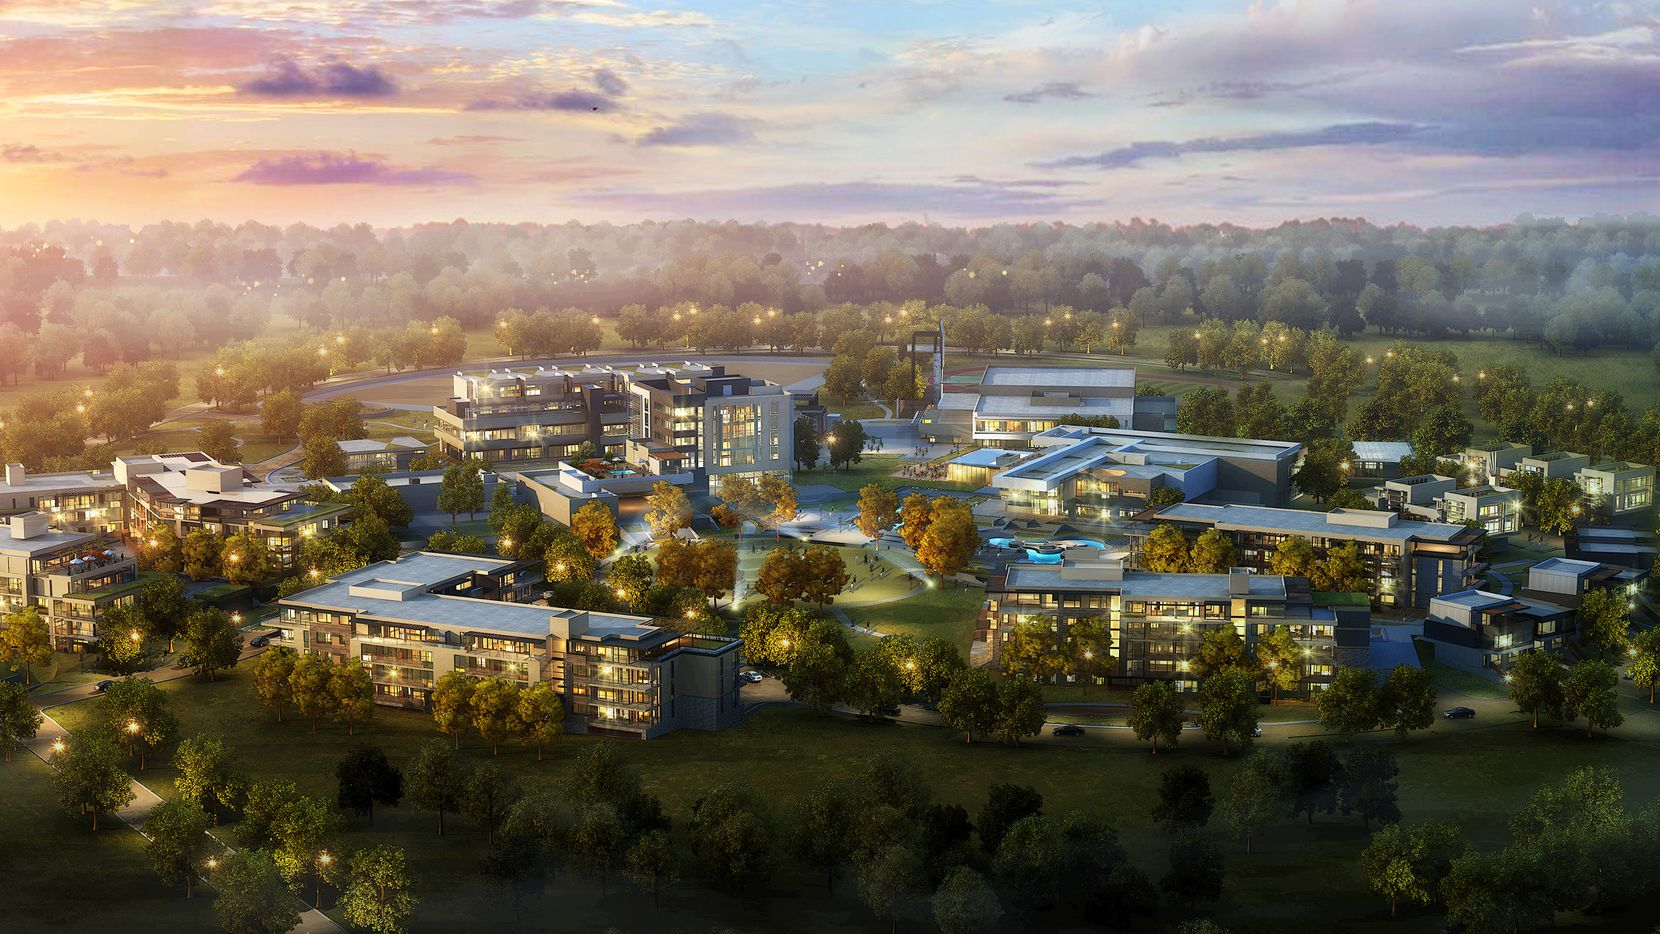 An architect's rendering shows the new mixed-use complex planned at The Village on Southwestern Boulevard.